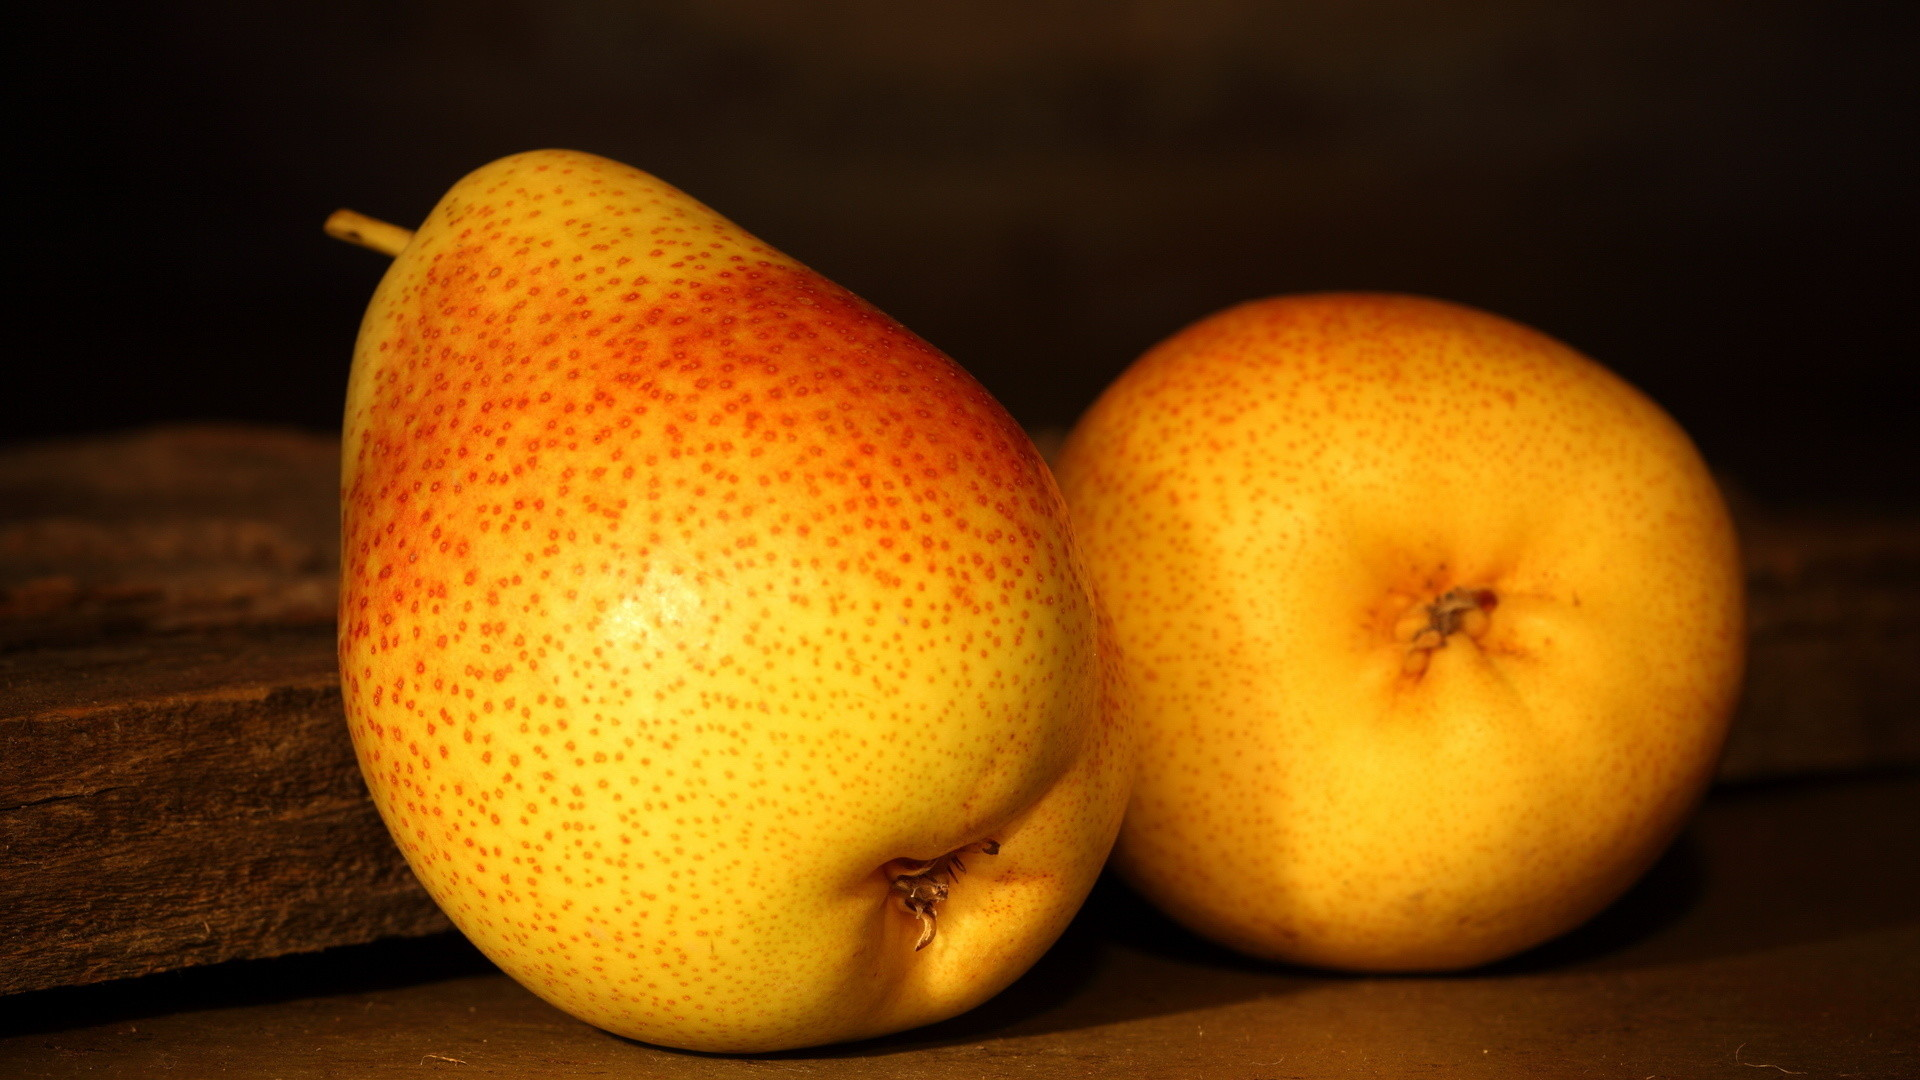 Res: 1920x1080, Pear Wallpapers 8 - 1920 X 1080